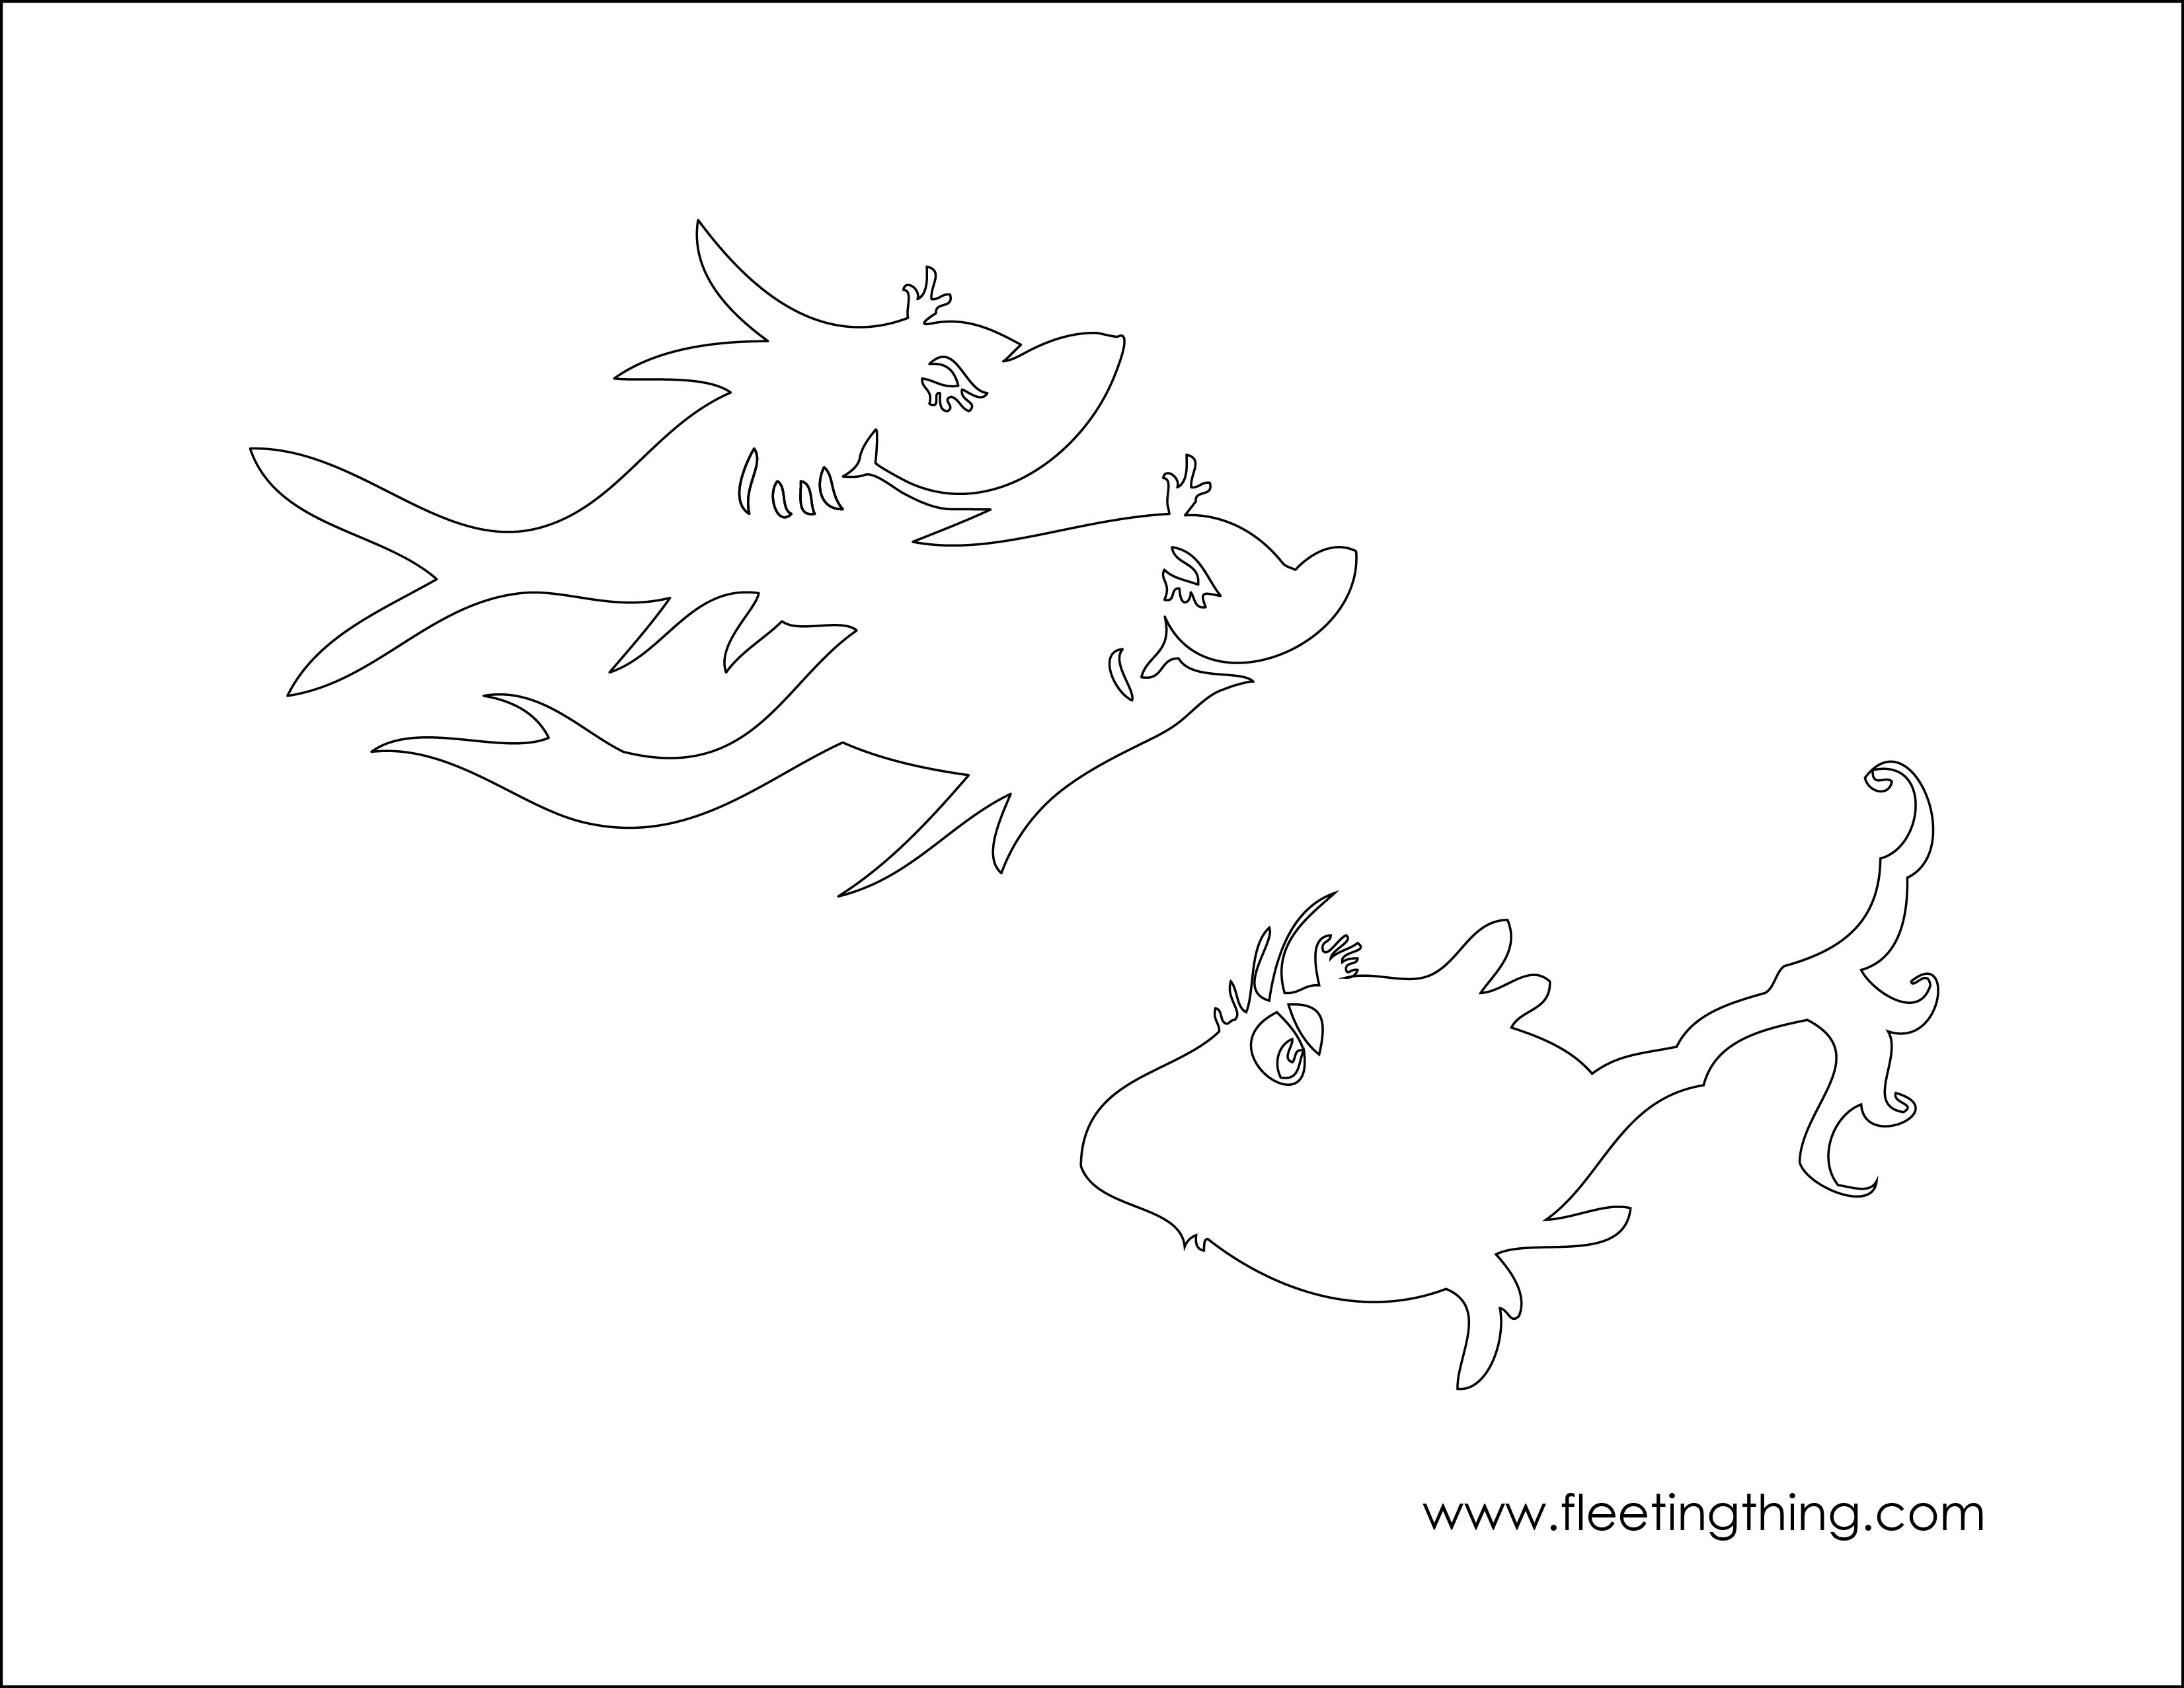 Free Coloring Pages Download Seuss Fish Colouring Page 3 Kidsplay Pinterest Of One